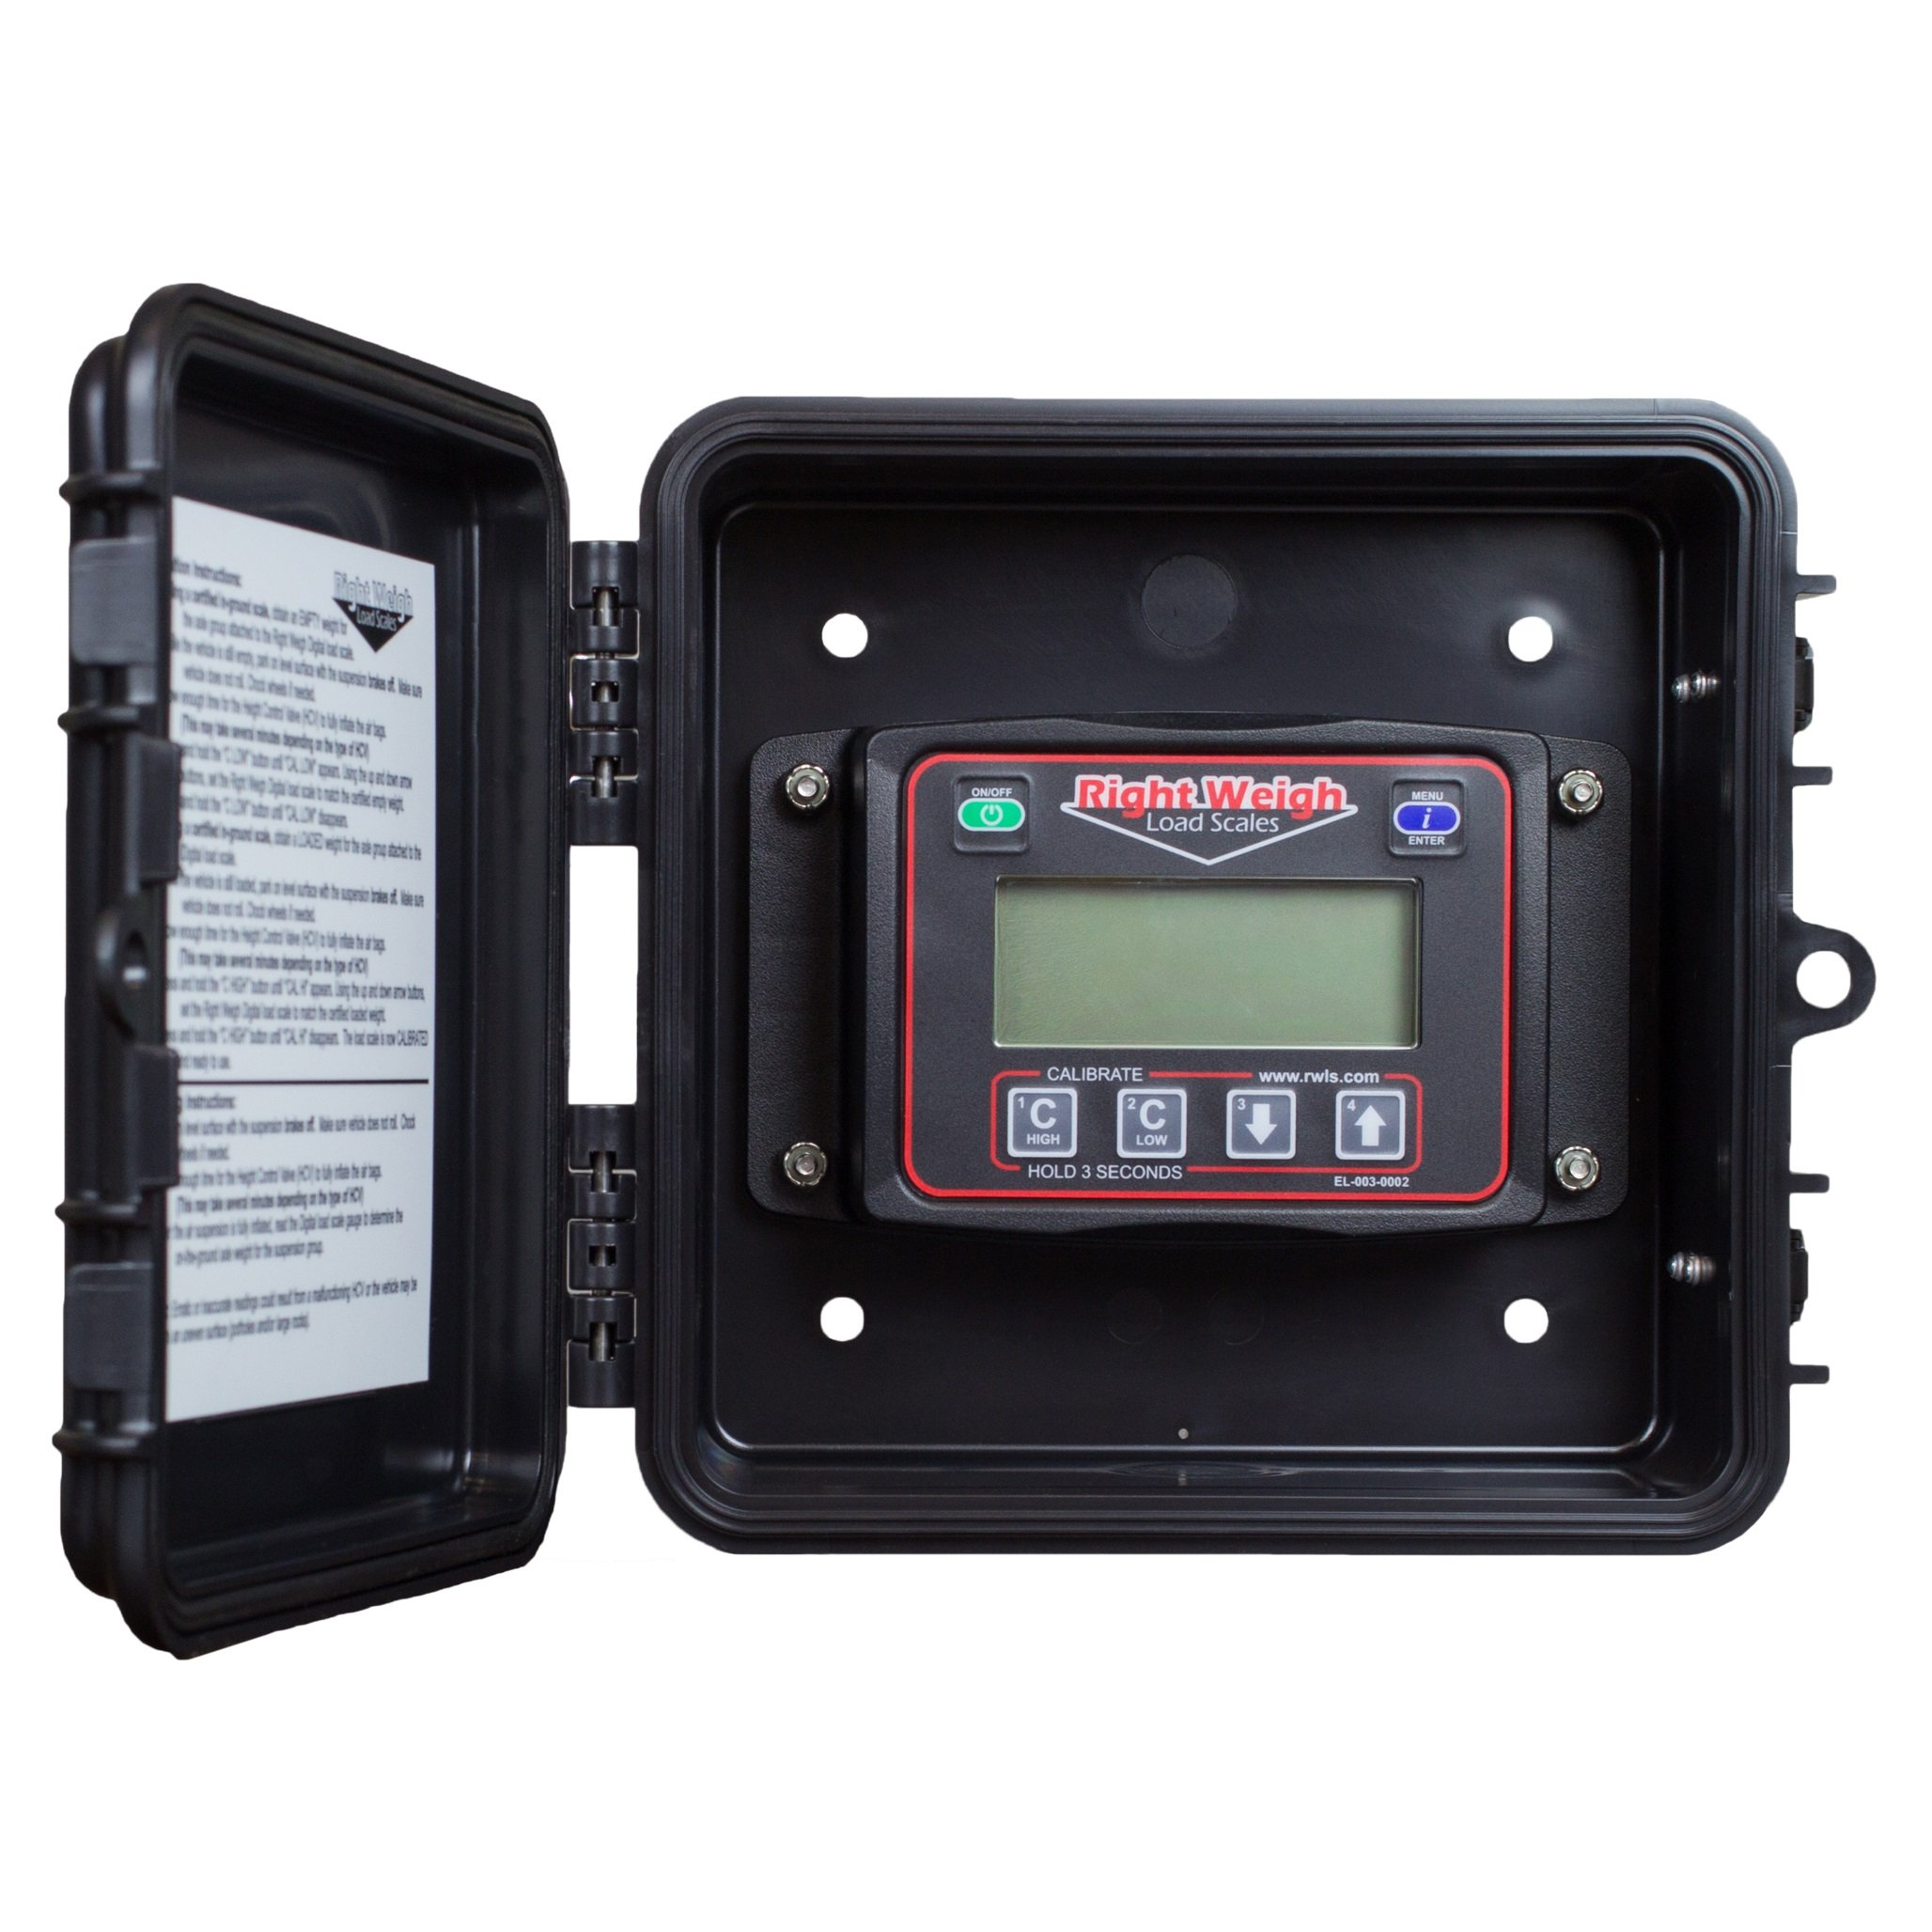 Right Weigh 201-EDG-02B Exterior Digital Axle Load Scale - for Two Height Control Valve Air Suspensions or Dedicated Tractor/Trailer Sets